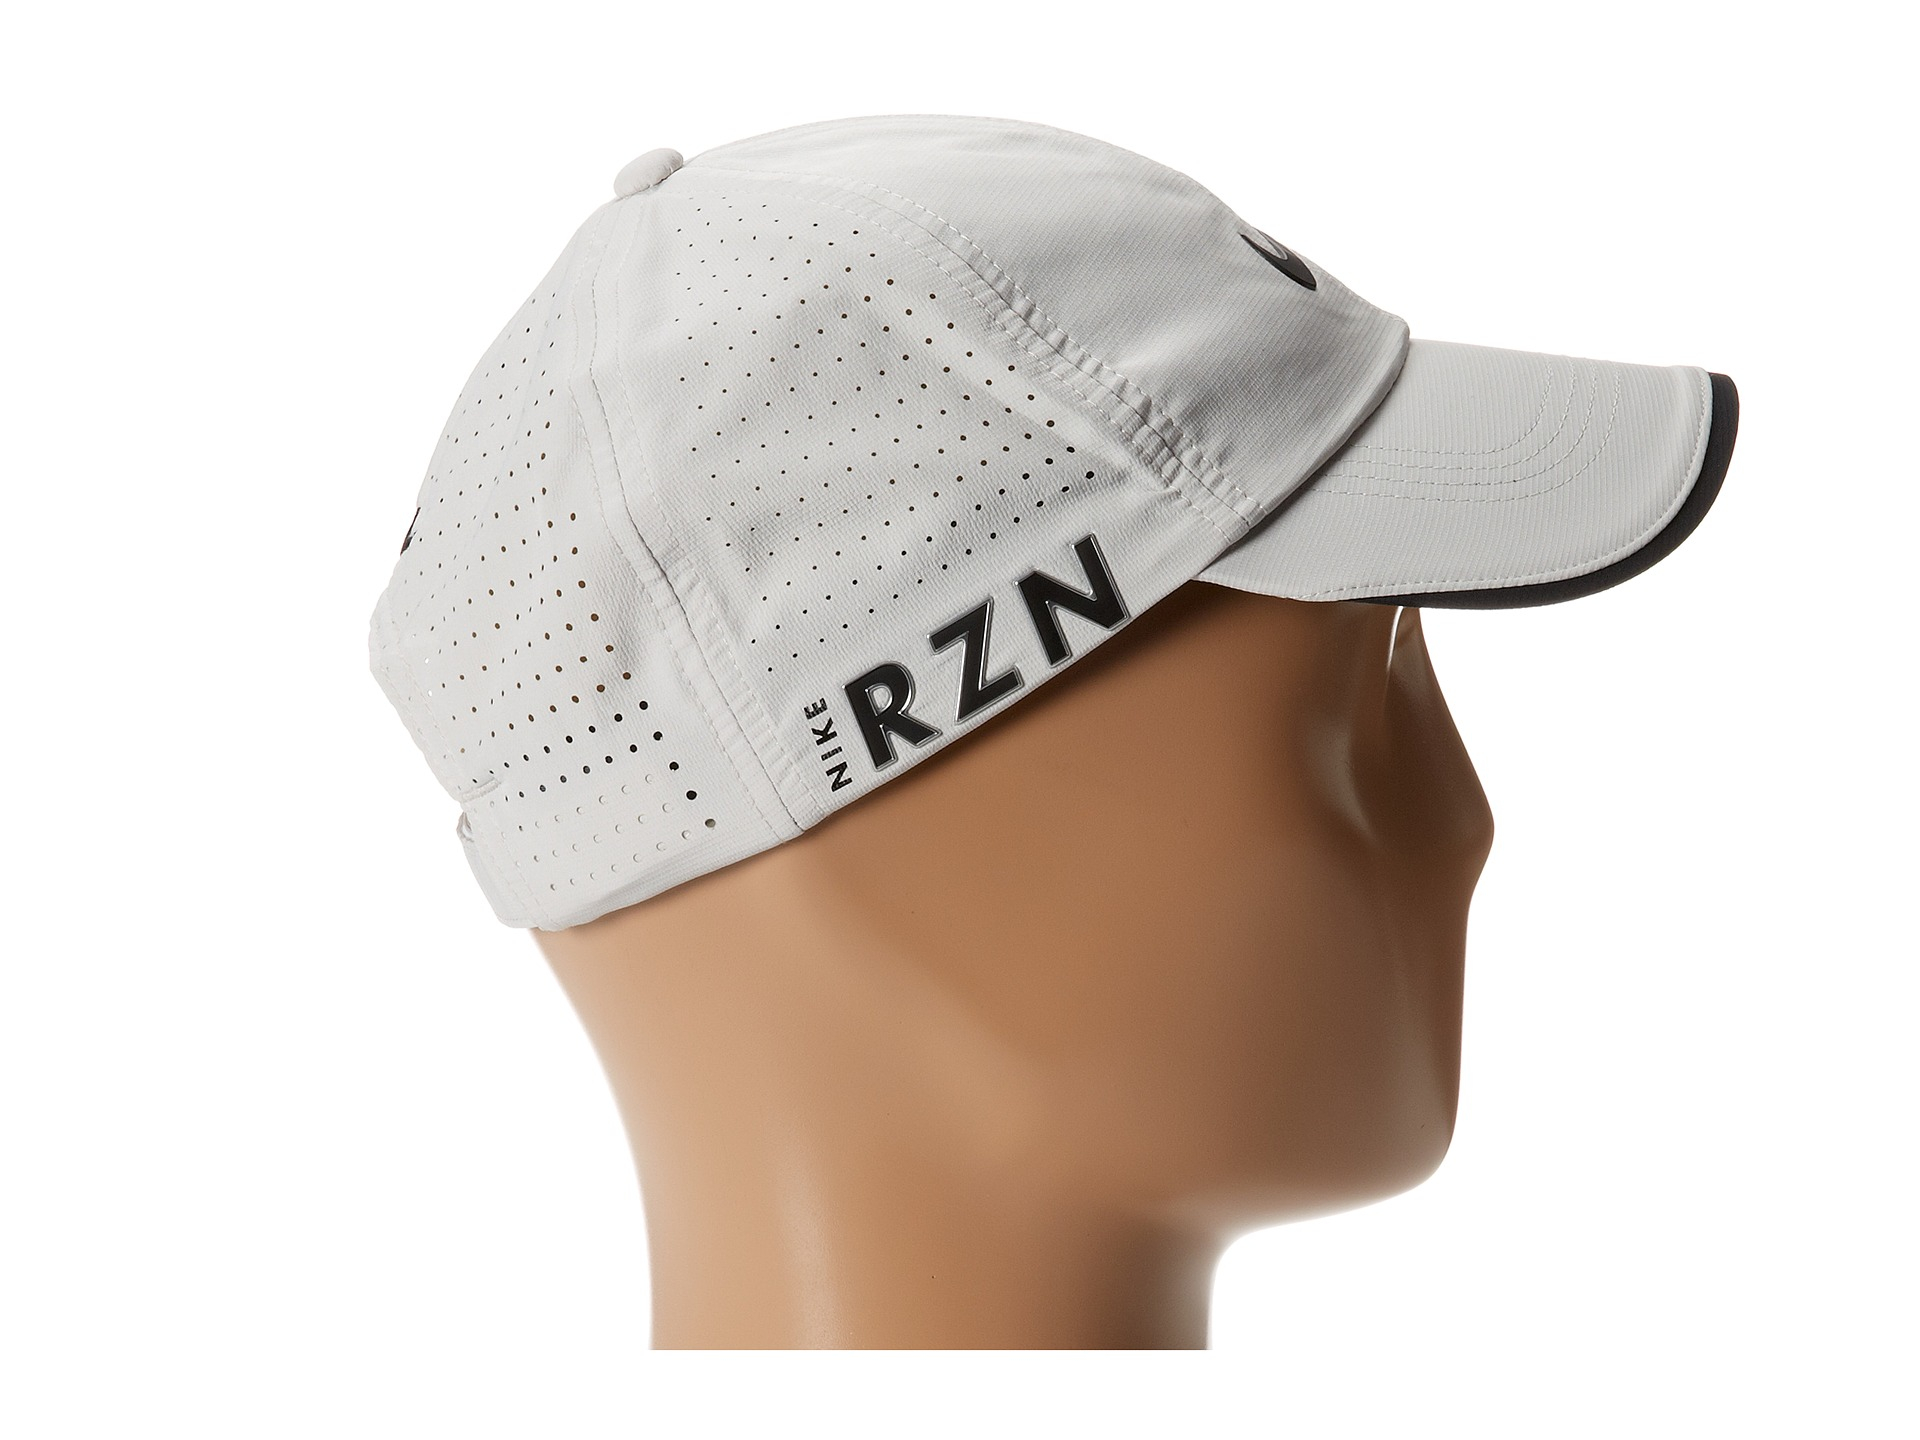 Lyst - Nike Tour Perforated Cap in White for Men f6d3d2c7a6c